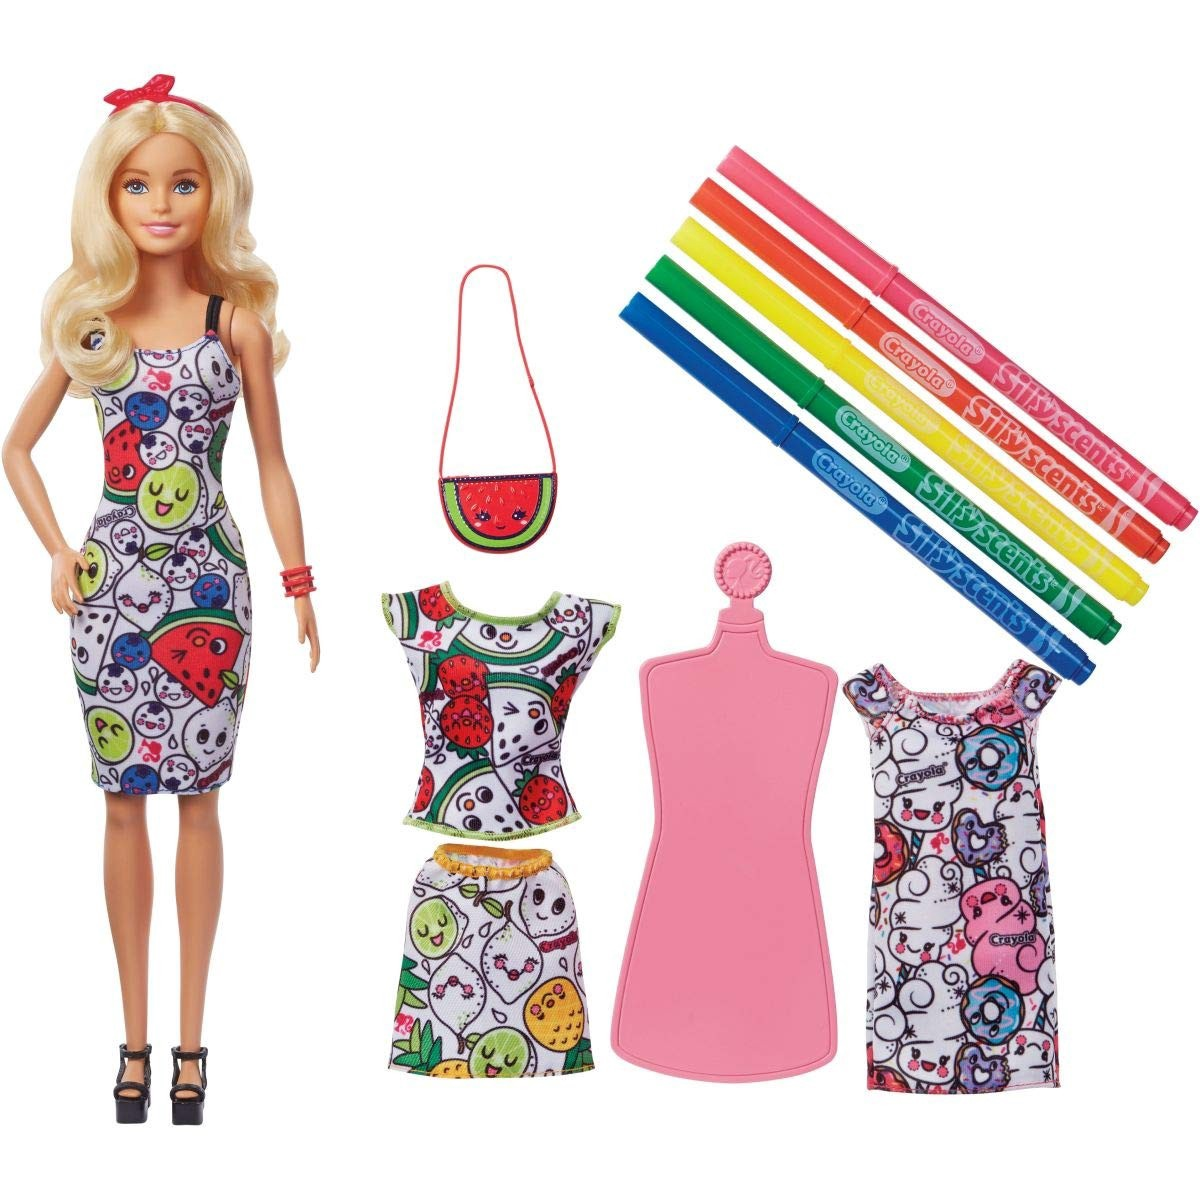 BARBIE CRAYOLA COLOR-IN-FASHIONS DOLL